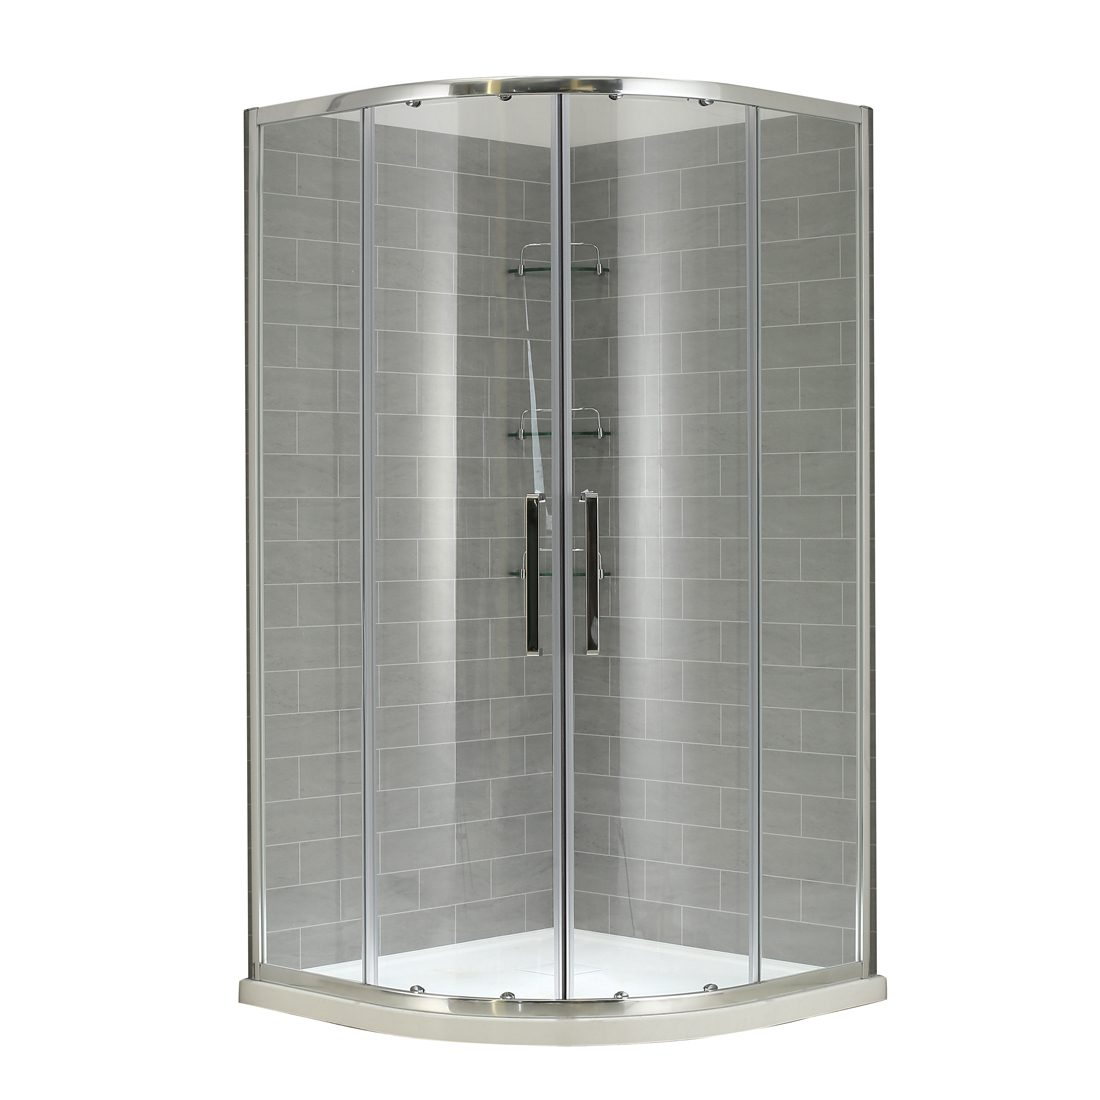 Manchester Shower Center 38inch Front View